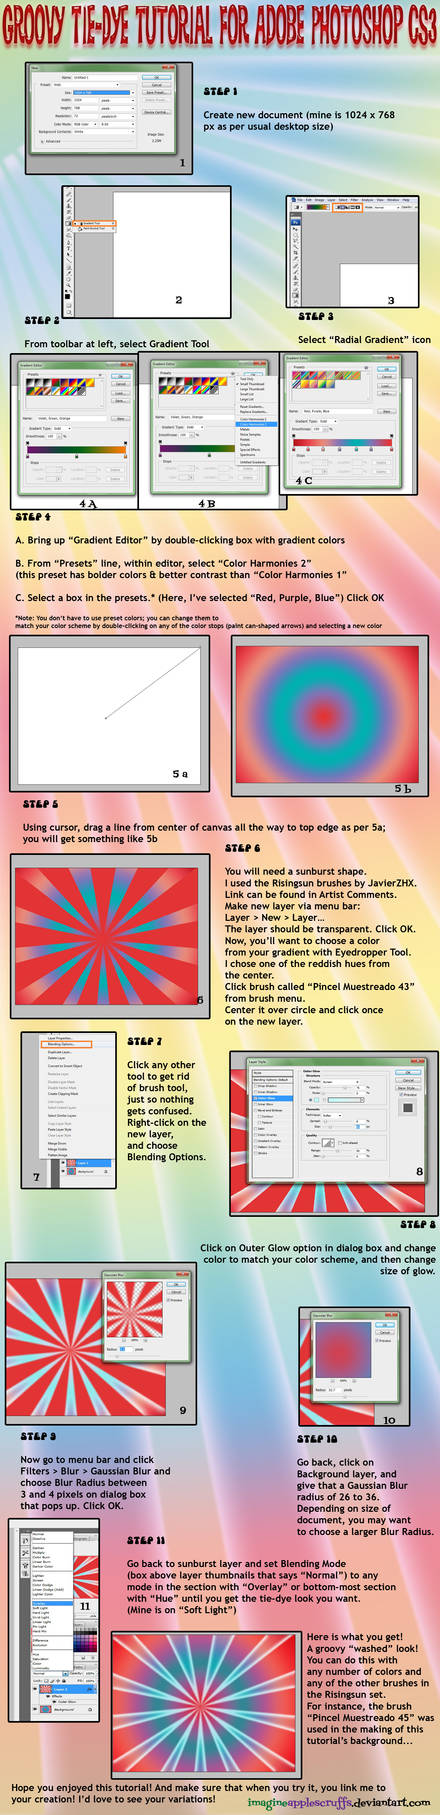 Photoshop Tie-Dye Tutorial by Sagittarianism